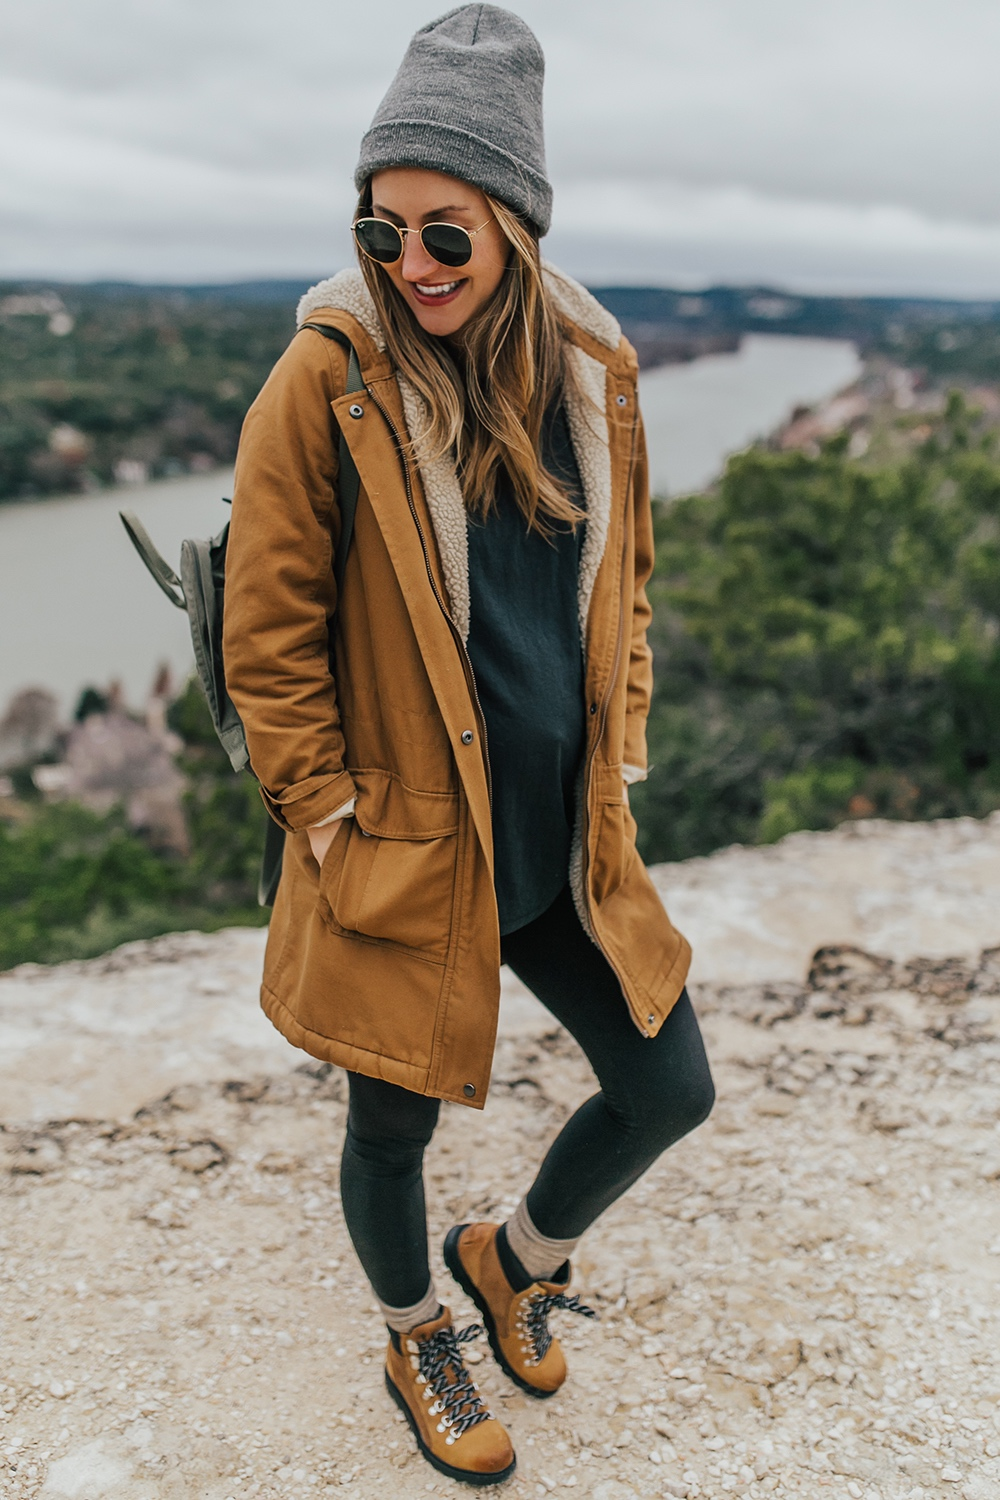 livvyland-blog-olivia-watson-austin-texas-fashion-lifestyle-blogger-patagonia-prarie-dawn-jacket-winter-hike-mount-bonnell-7